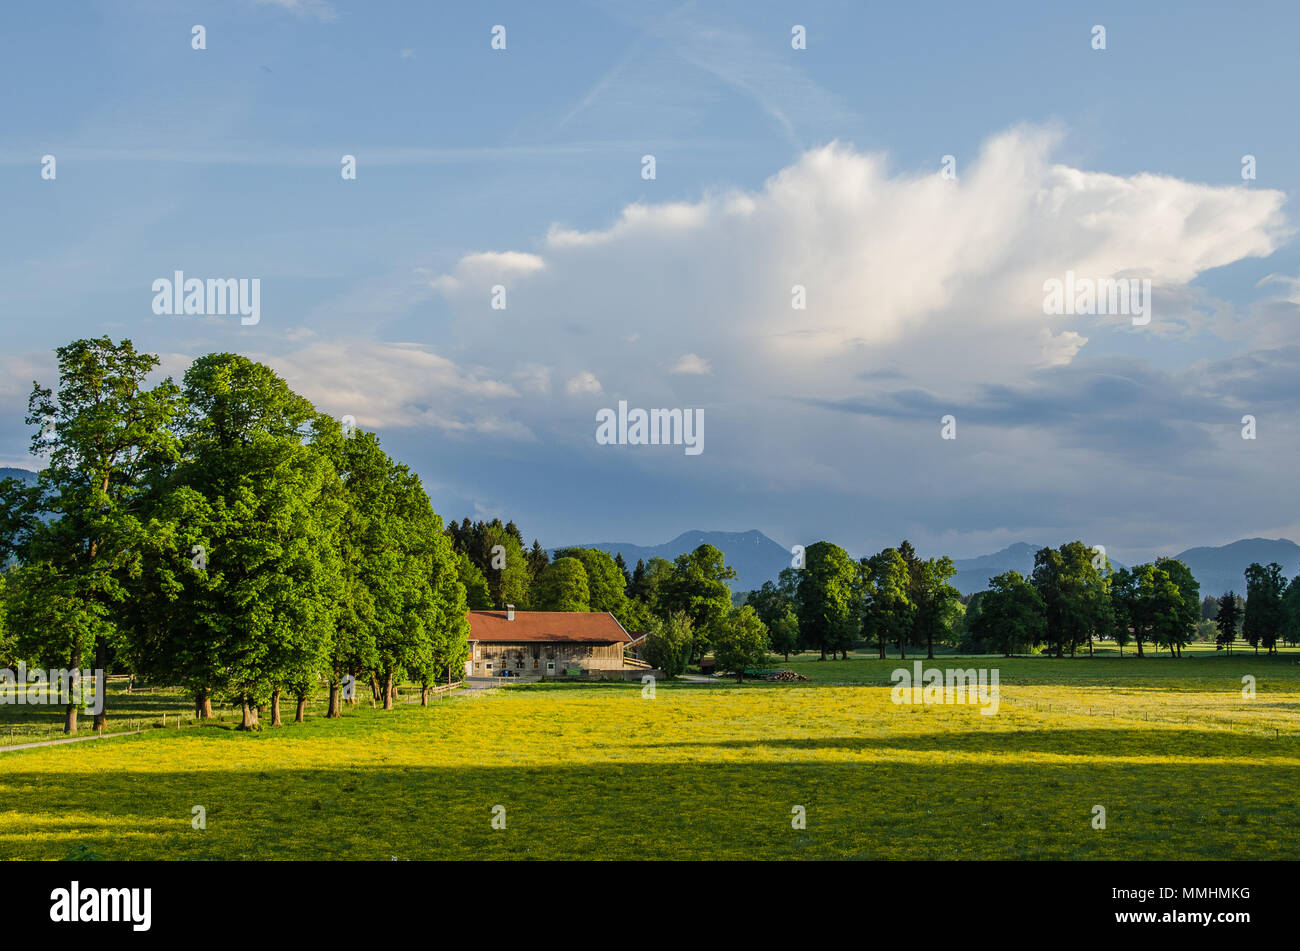 typical Bavarian landskape - Stock Image